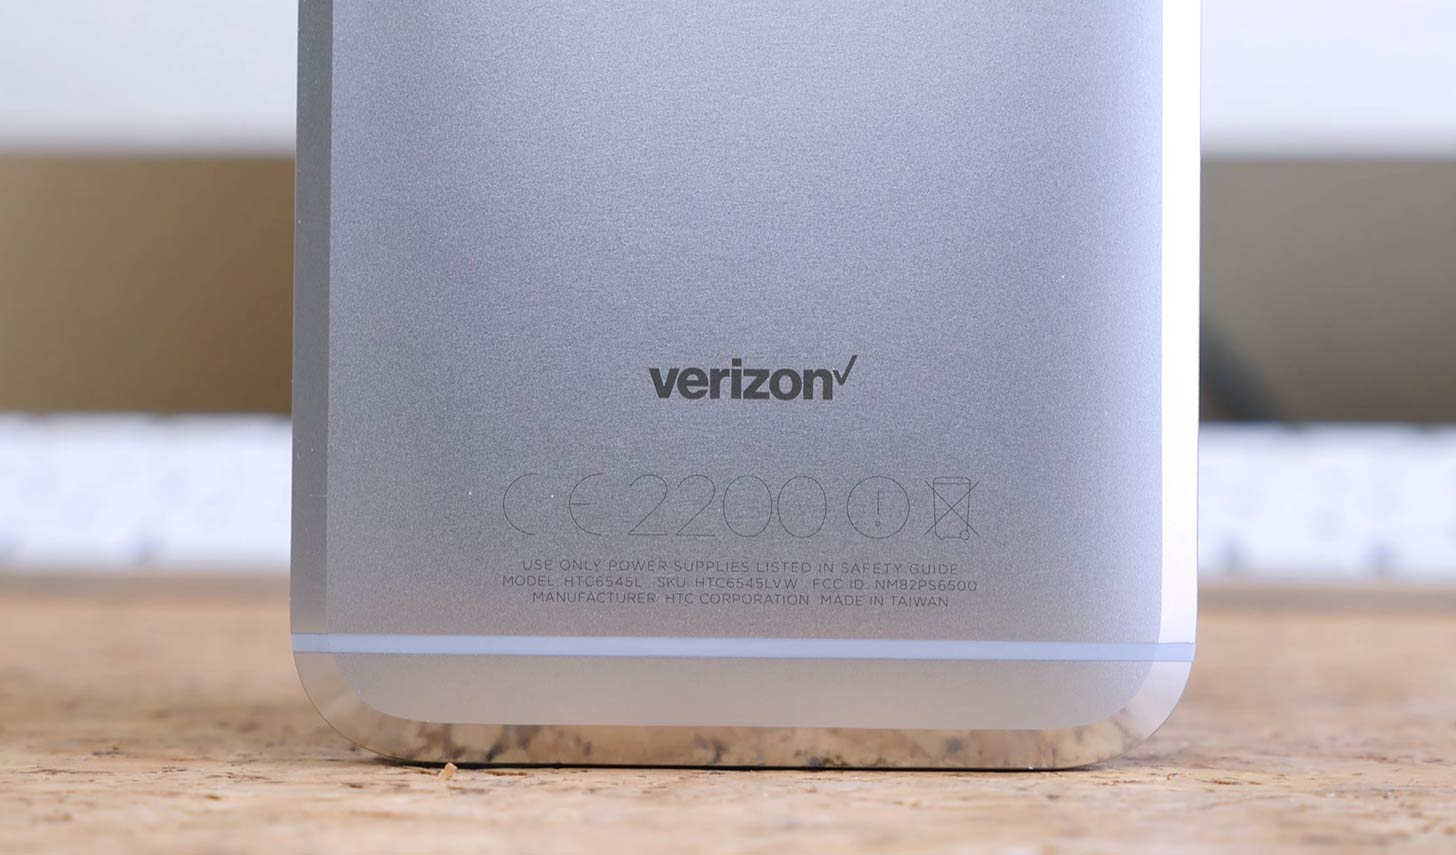 Verizon launches LTE Home Internet service with unlimited ...